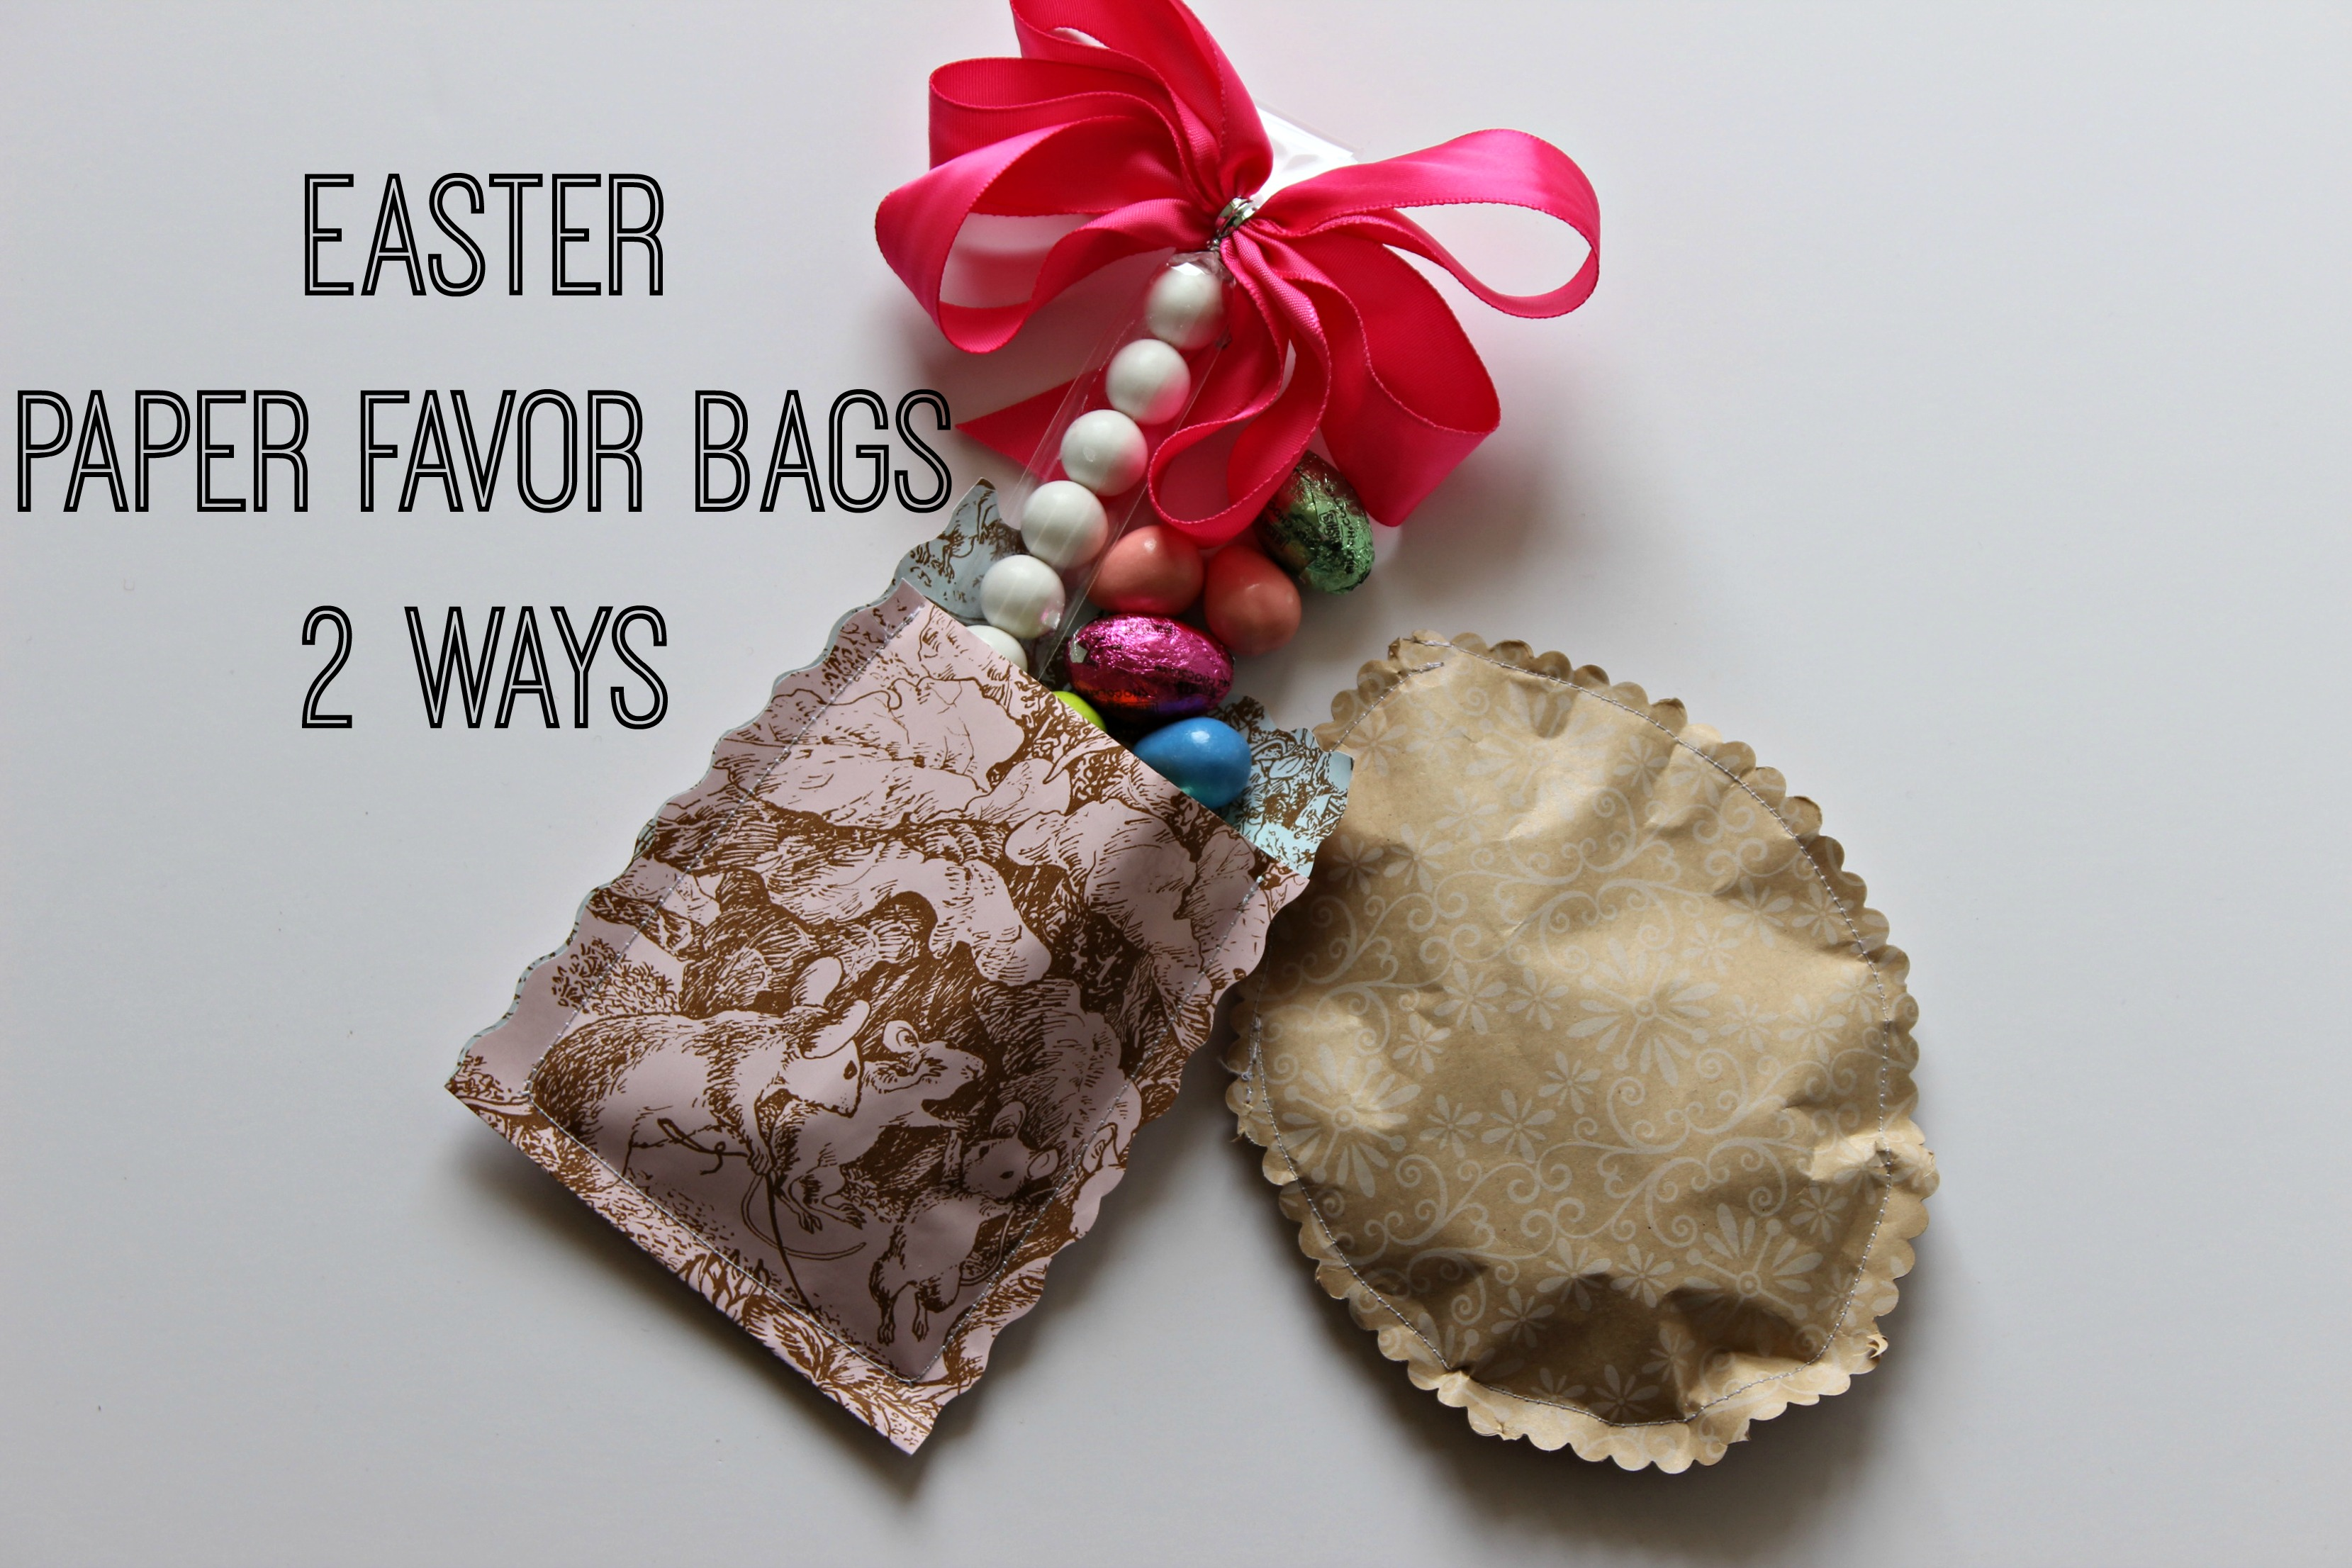 Diy easter candy favor bags days of chalk and chocolate with easter on its way i have been trying to think of a cute way to package some candy as a little treat for guests and my girls nothing overboard just a negle Gallery